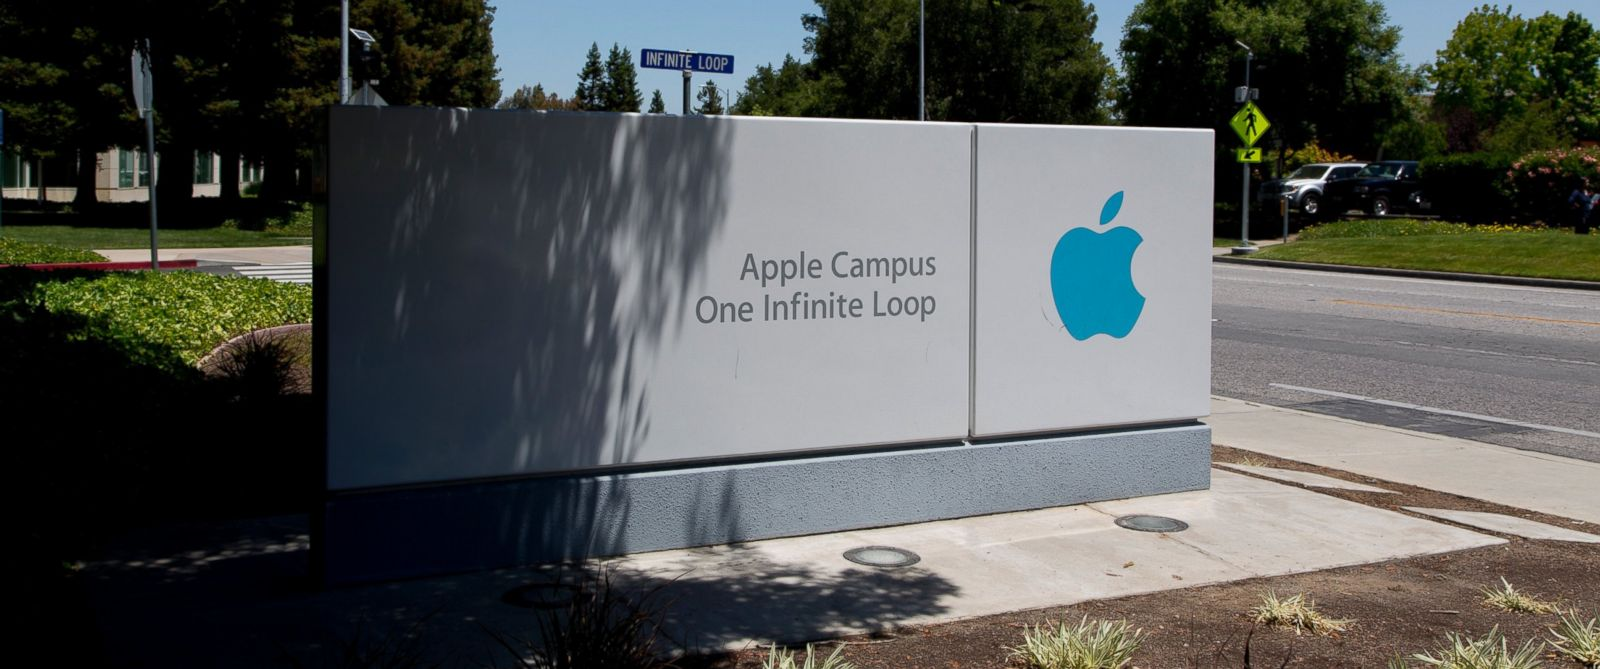 PHOTO: The Apple Campus sign is seen here in Cupertino, California.